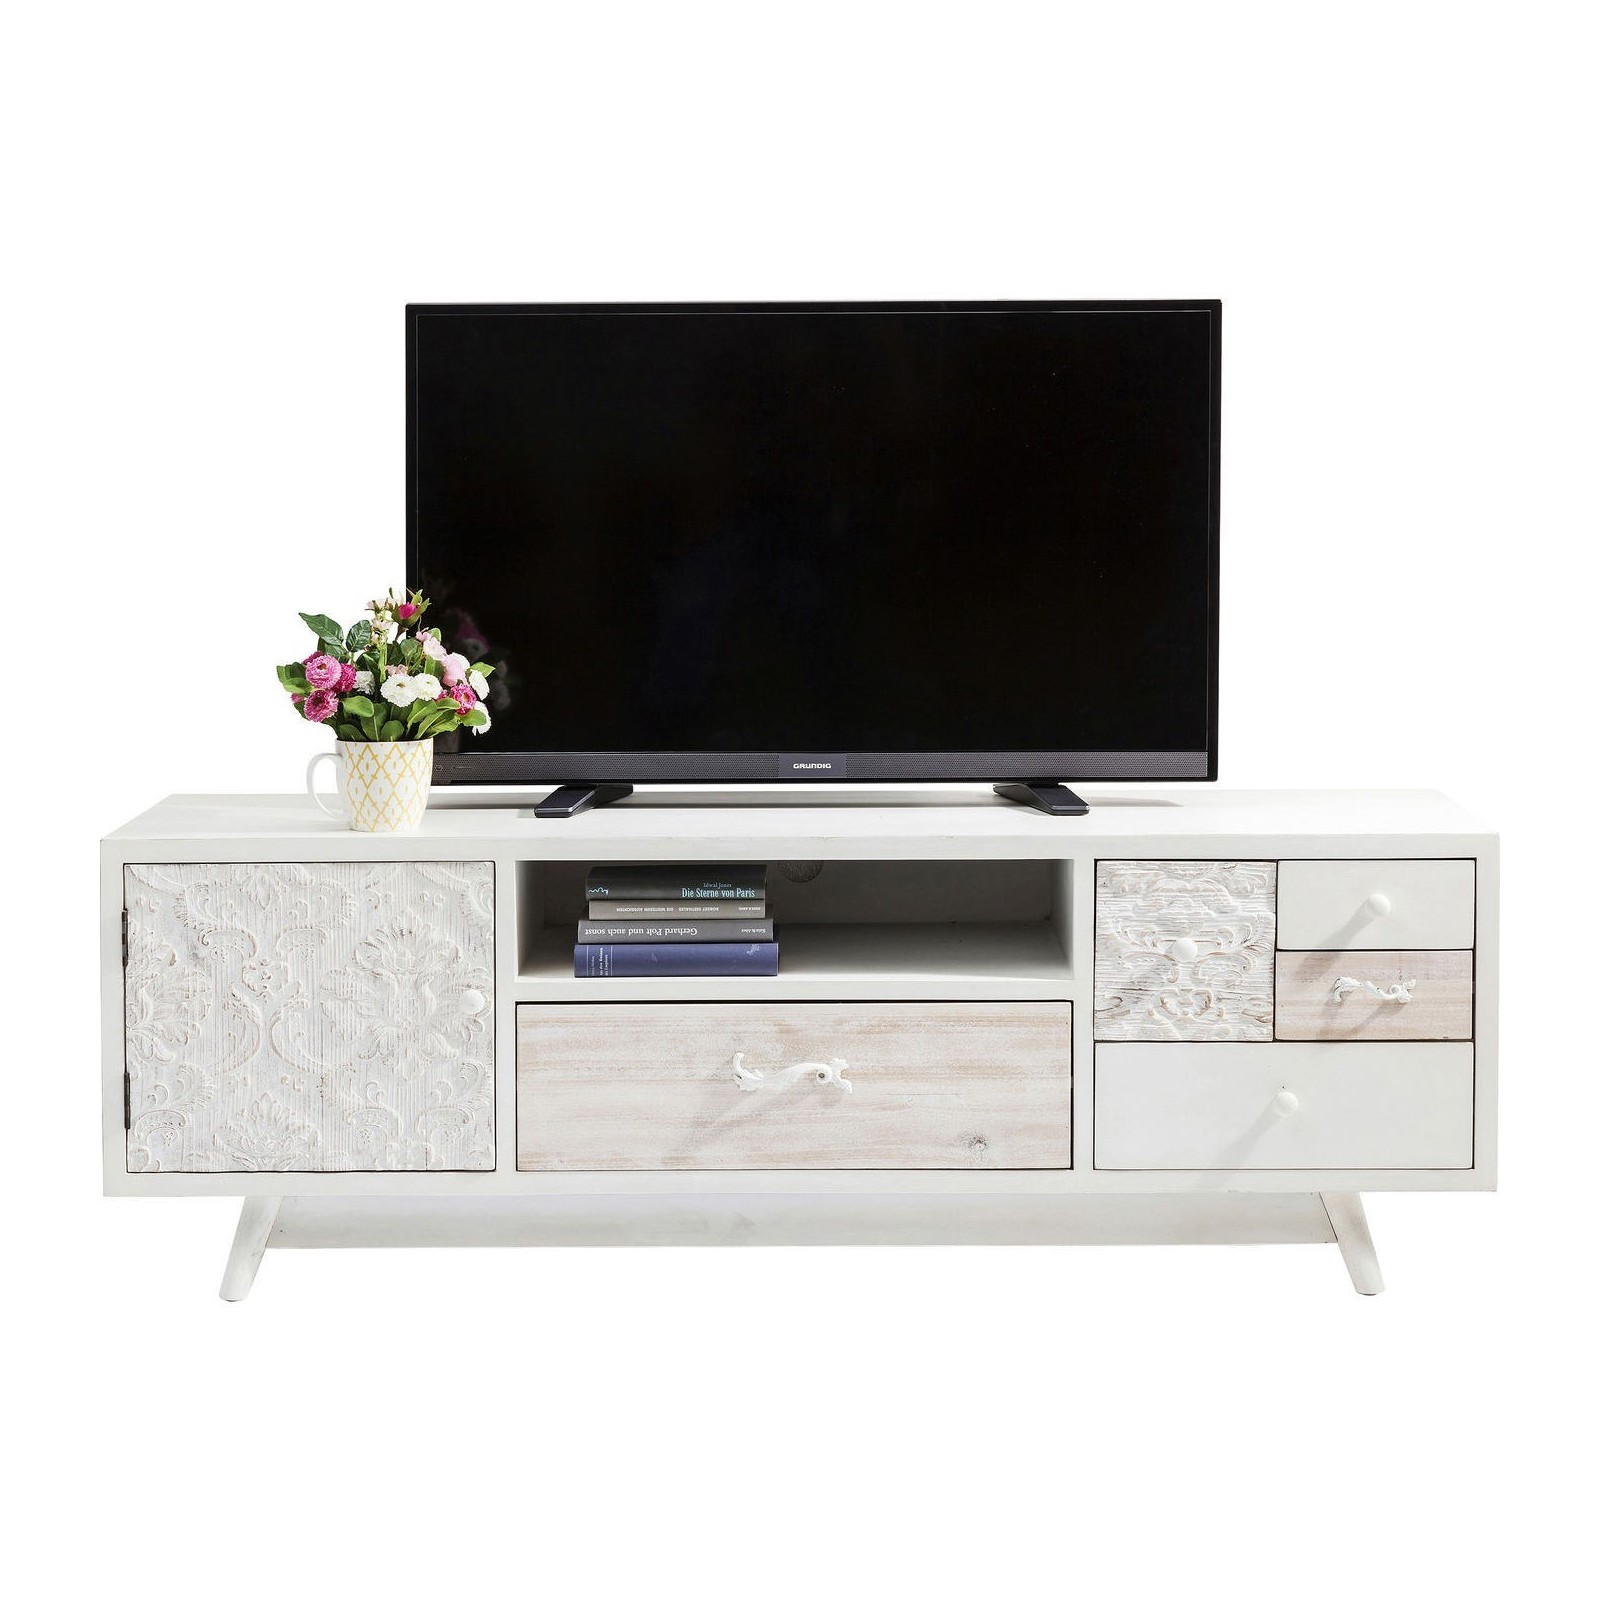 Meuble tv boh me sweet home kare design - Bibliotheque meuble sweet home d gratuit ...